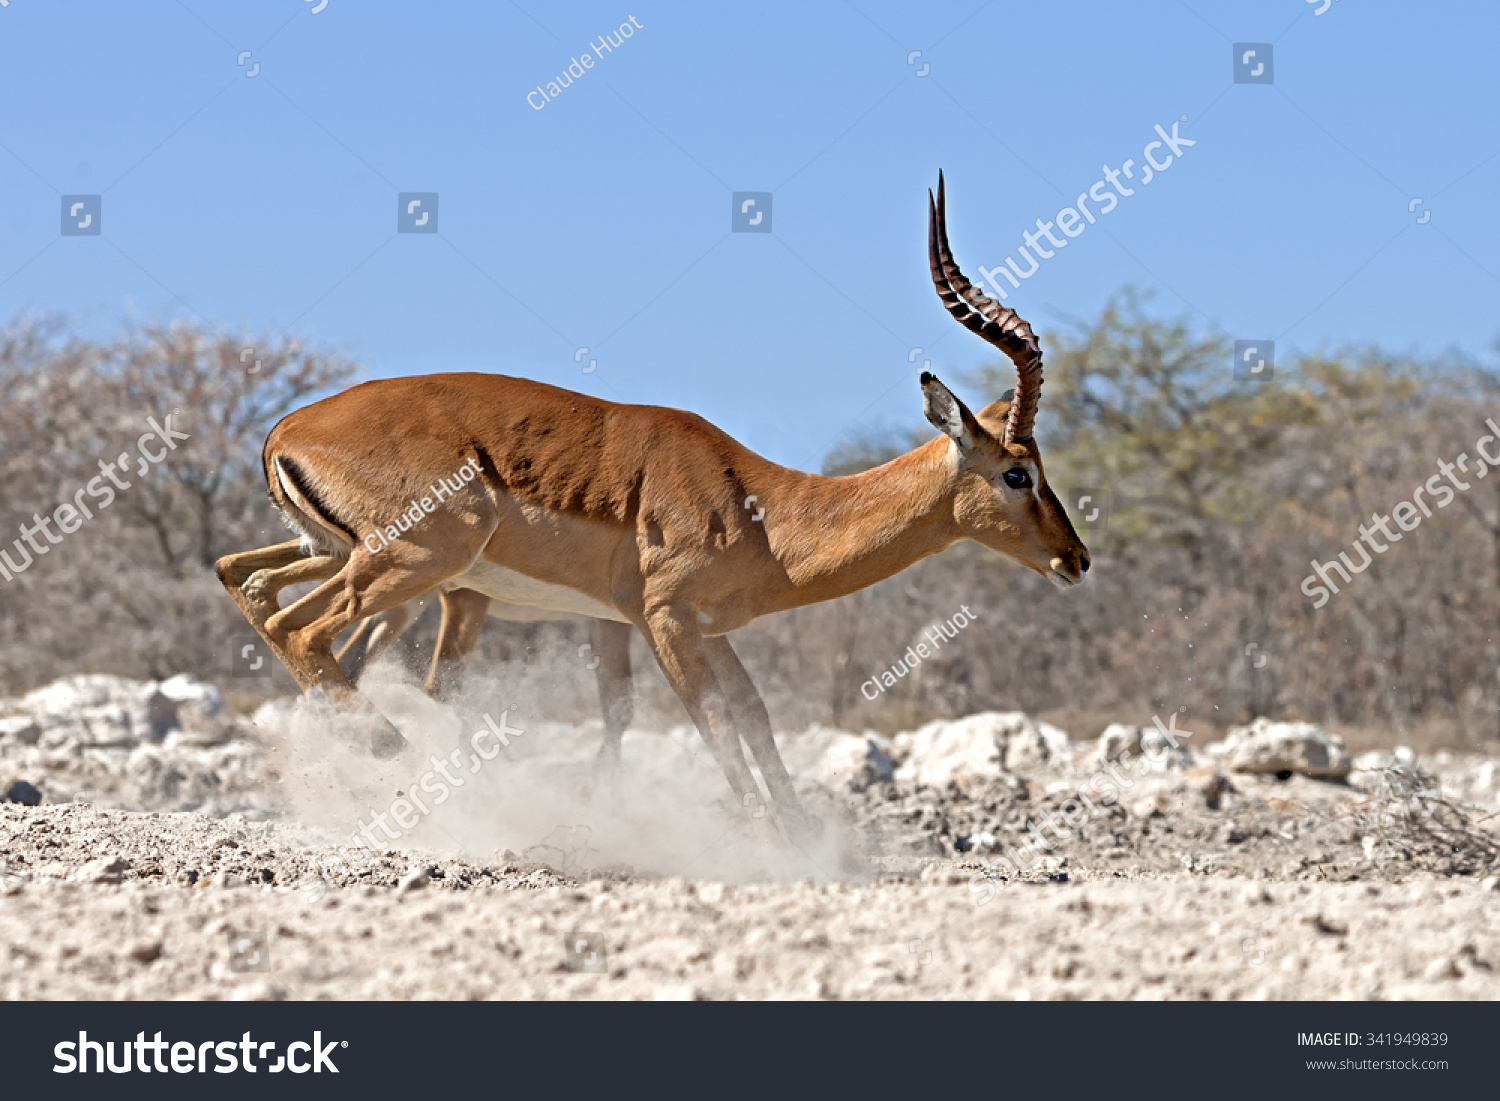 Male black-faced impala (Aepyceros melampus petersi) jumping when hearing a strange noise while drinking at a waterhole in Onguma Game Reserve, Etosha, Namibia.